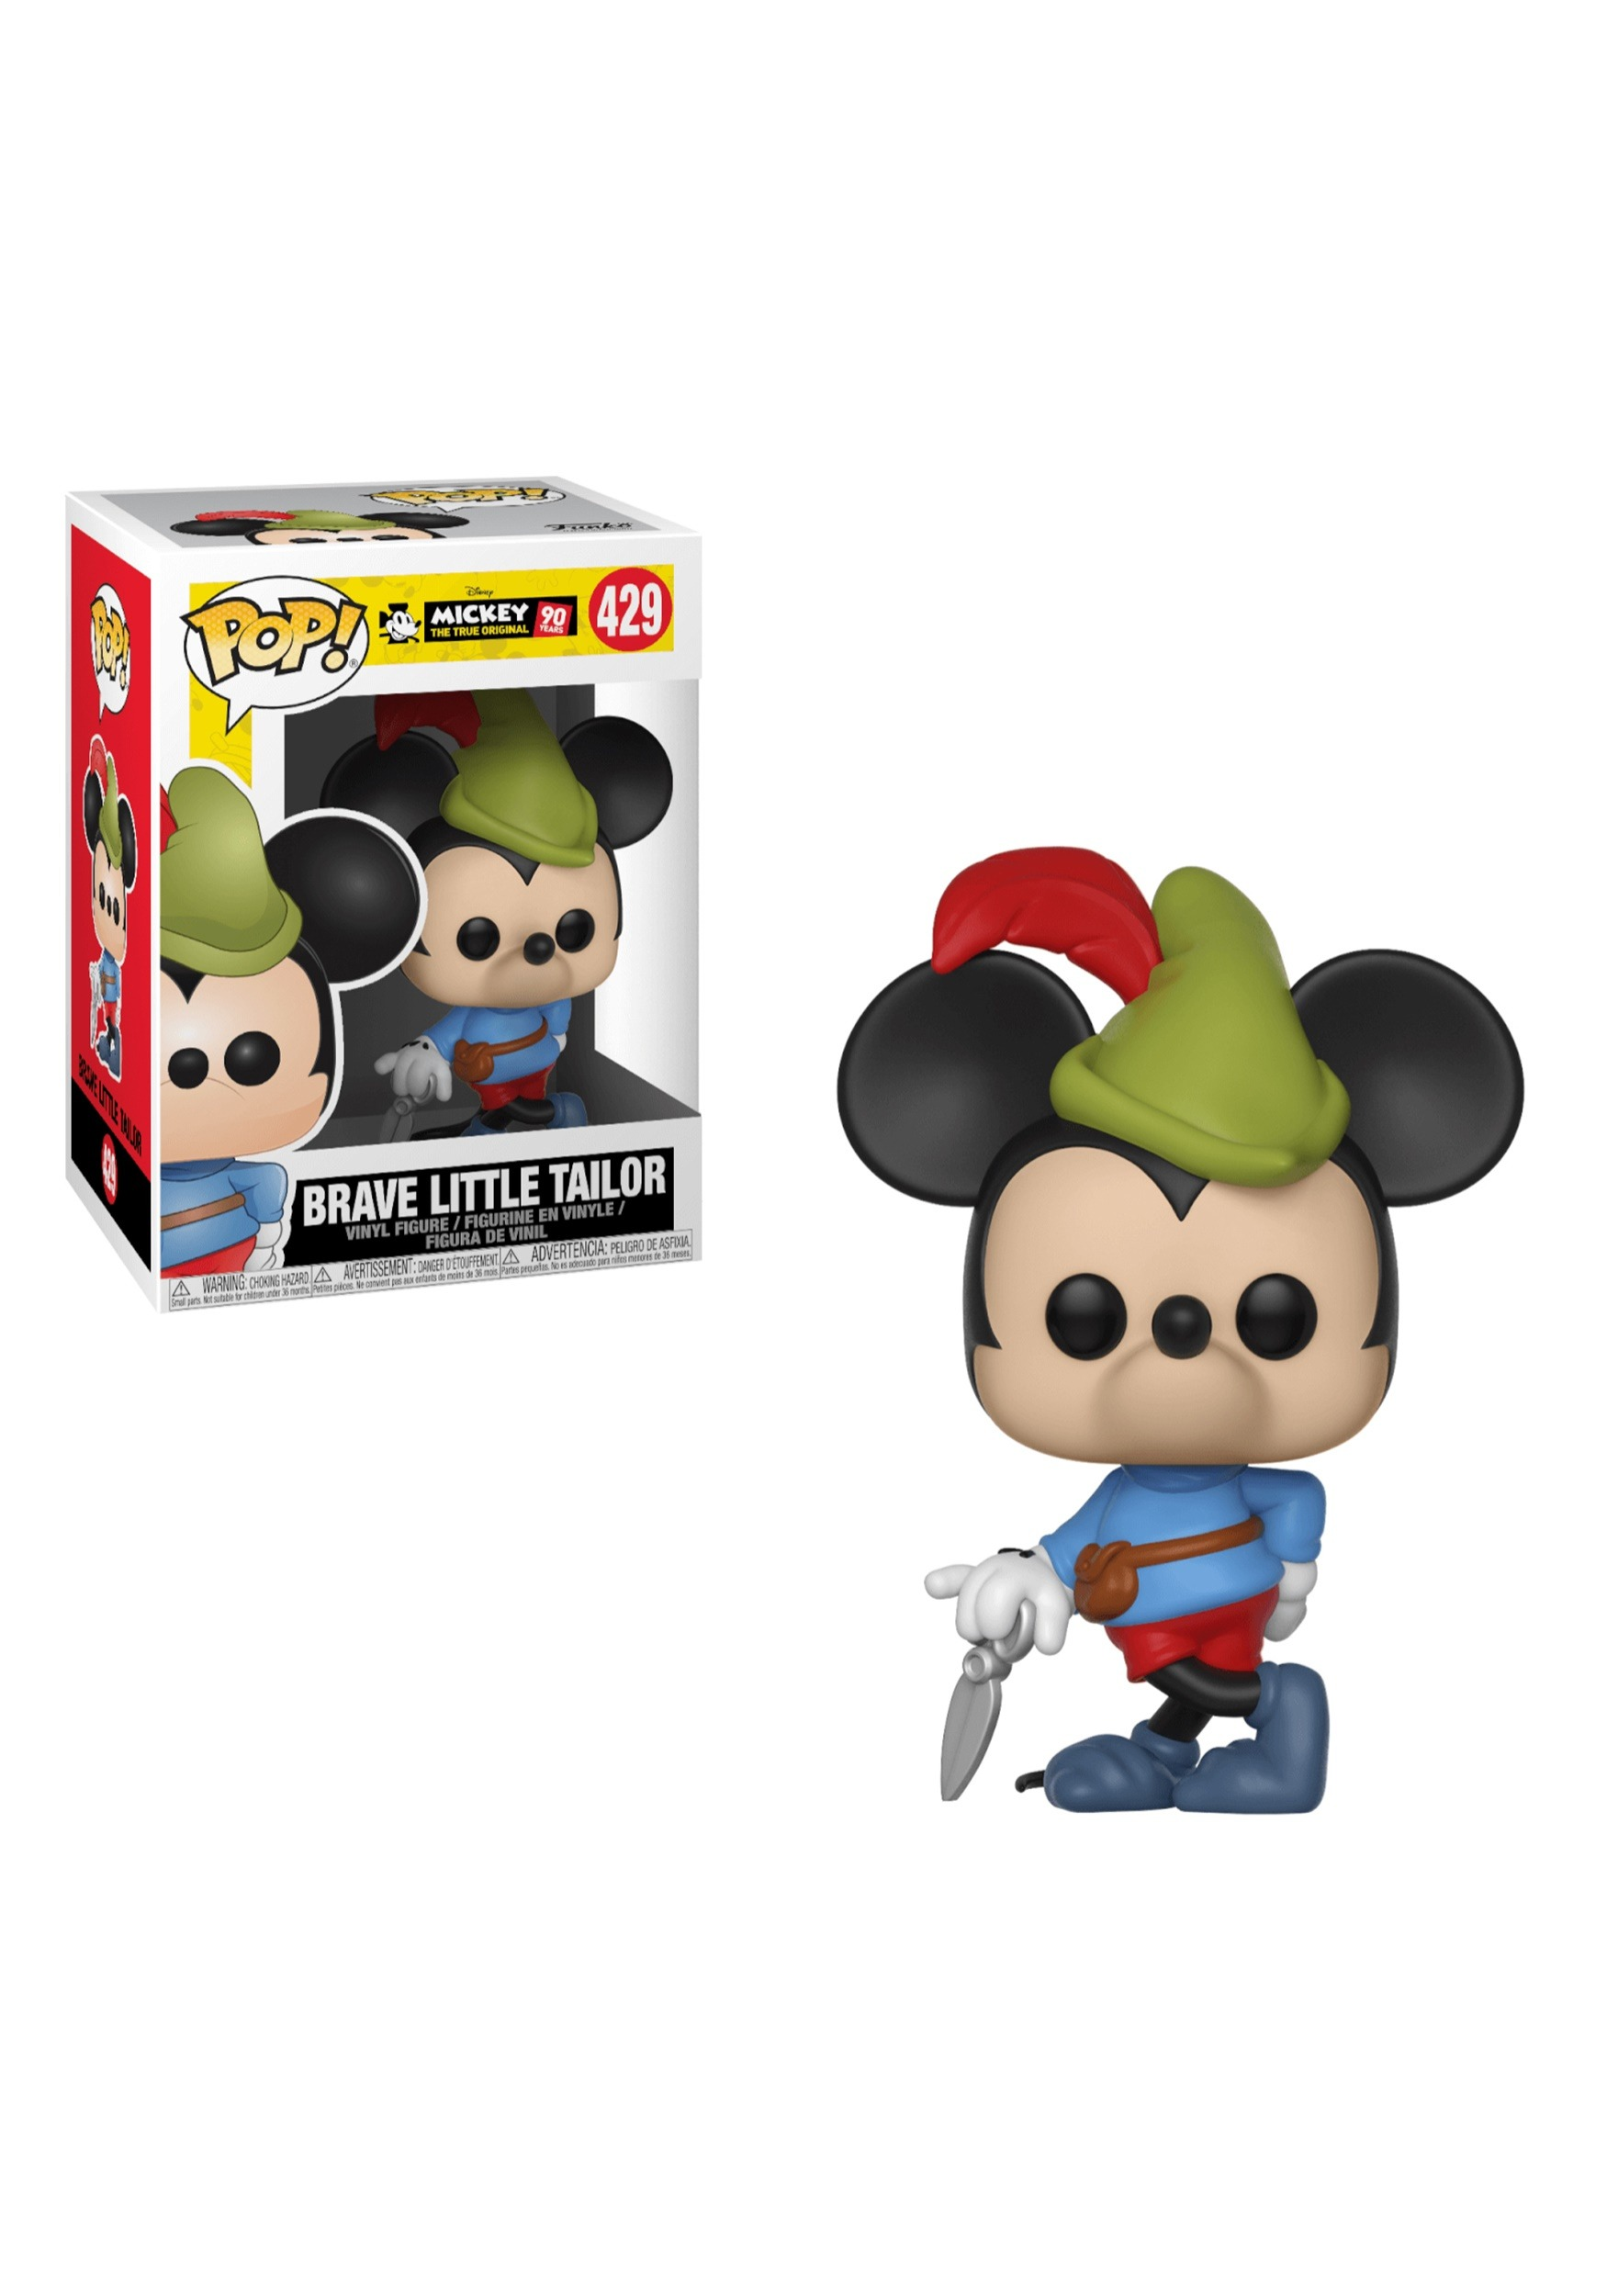 Pop! Disney: Brave Little Tailor- Mickey's 90th